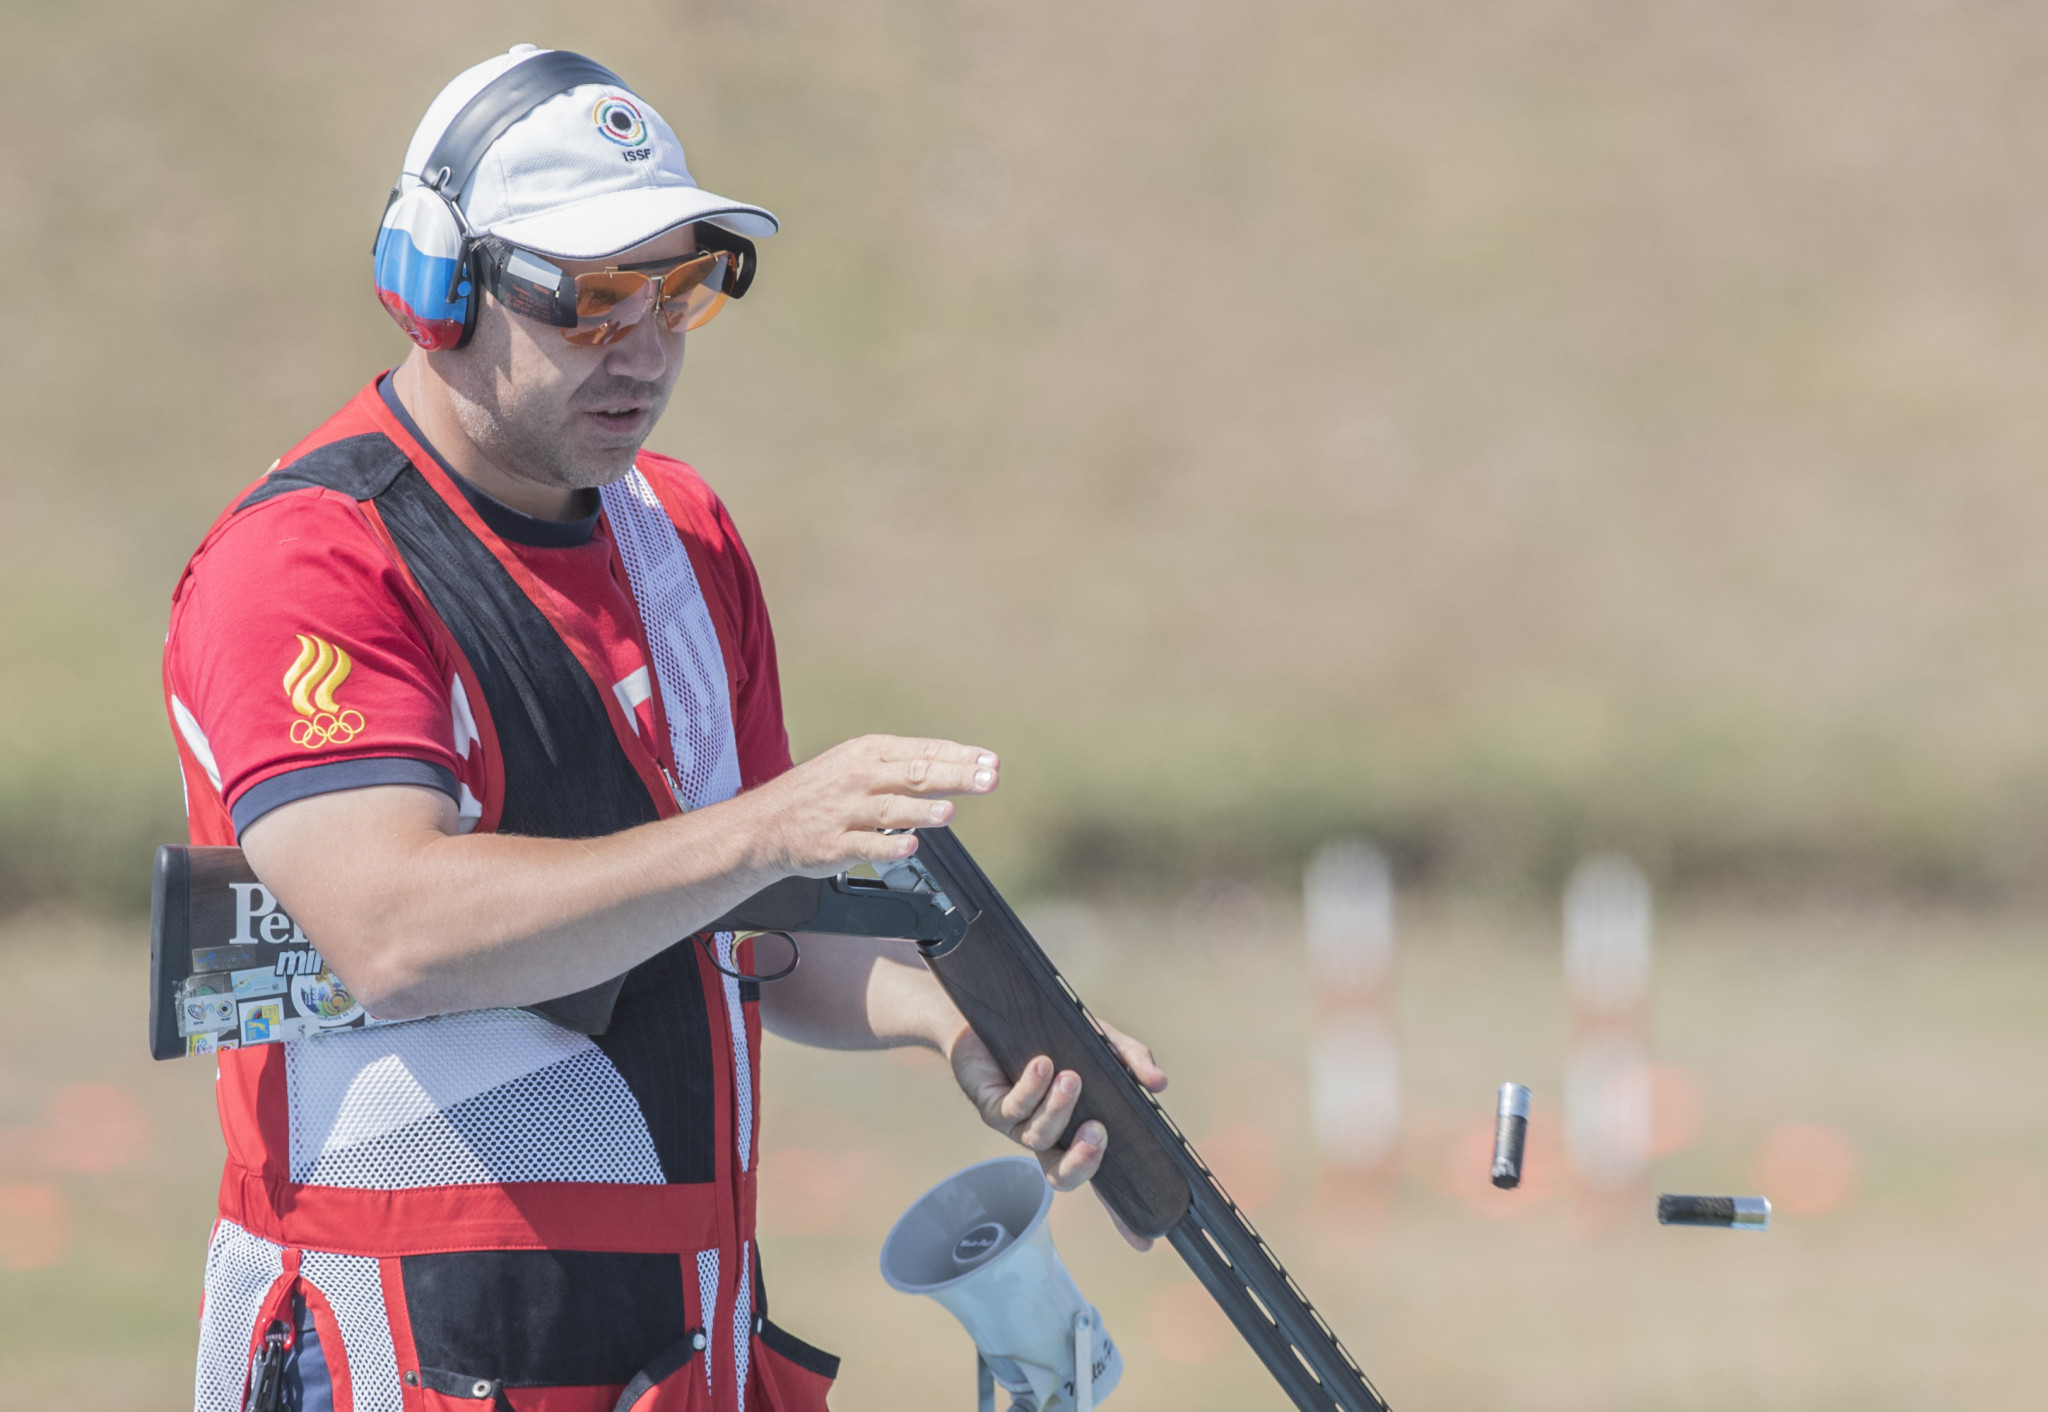 Alipov holds nerve to win men's trap gold at ISSF Shotgun World Cup